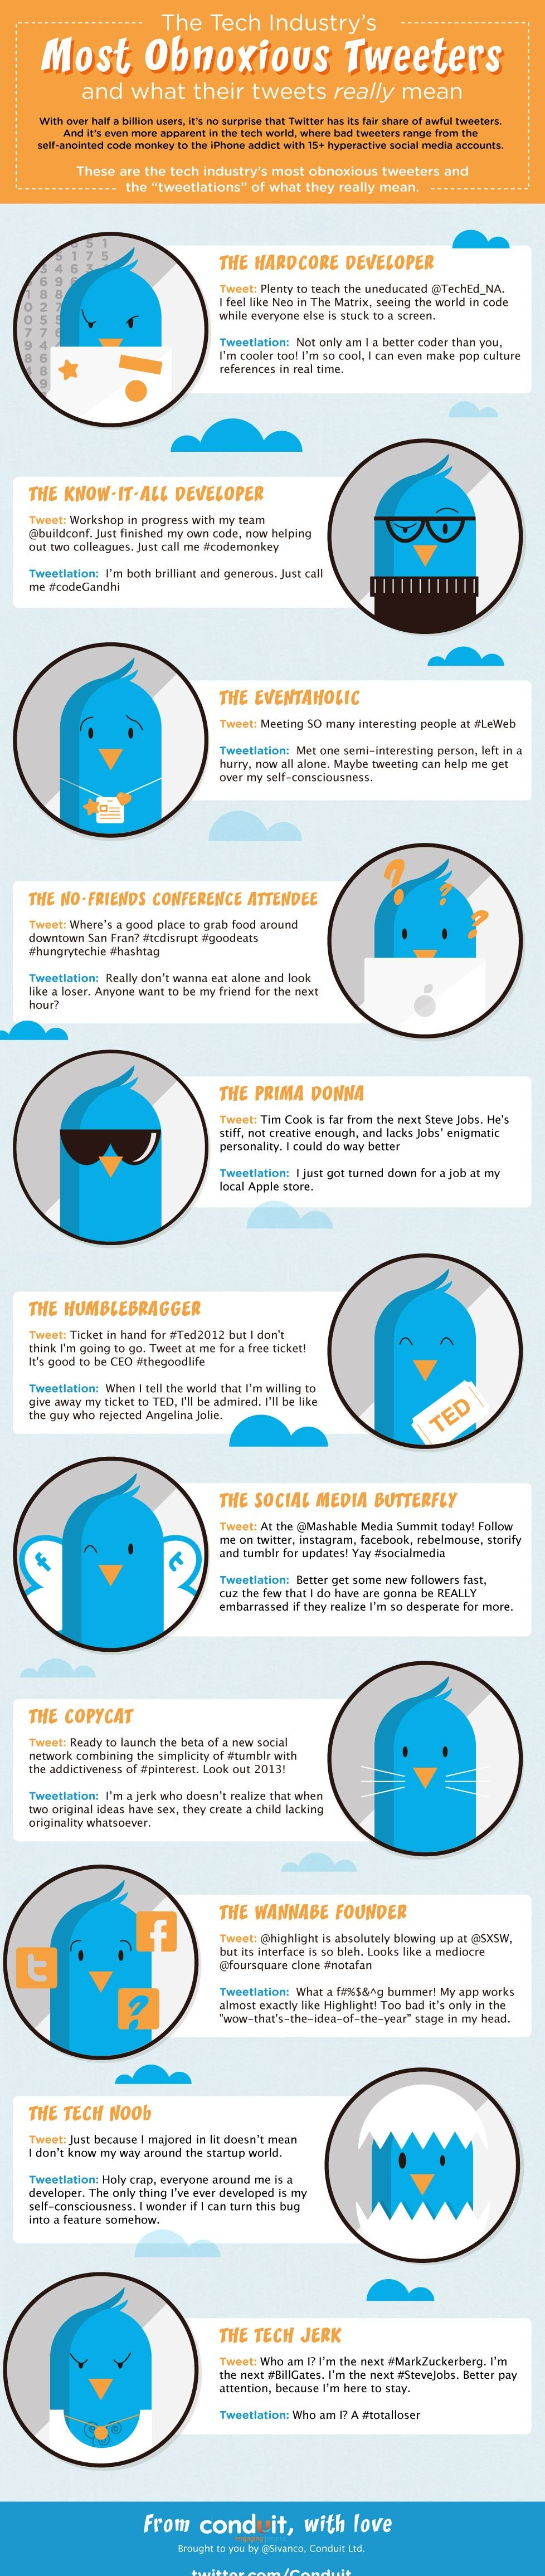 The Tech Industry's Most Obnoxious Tweeters #Infographic - via @Mashable